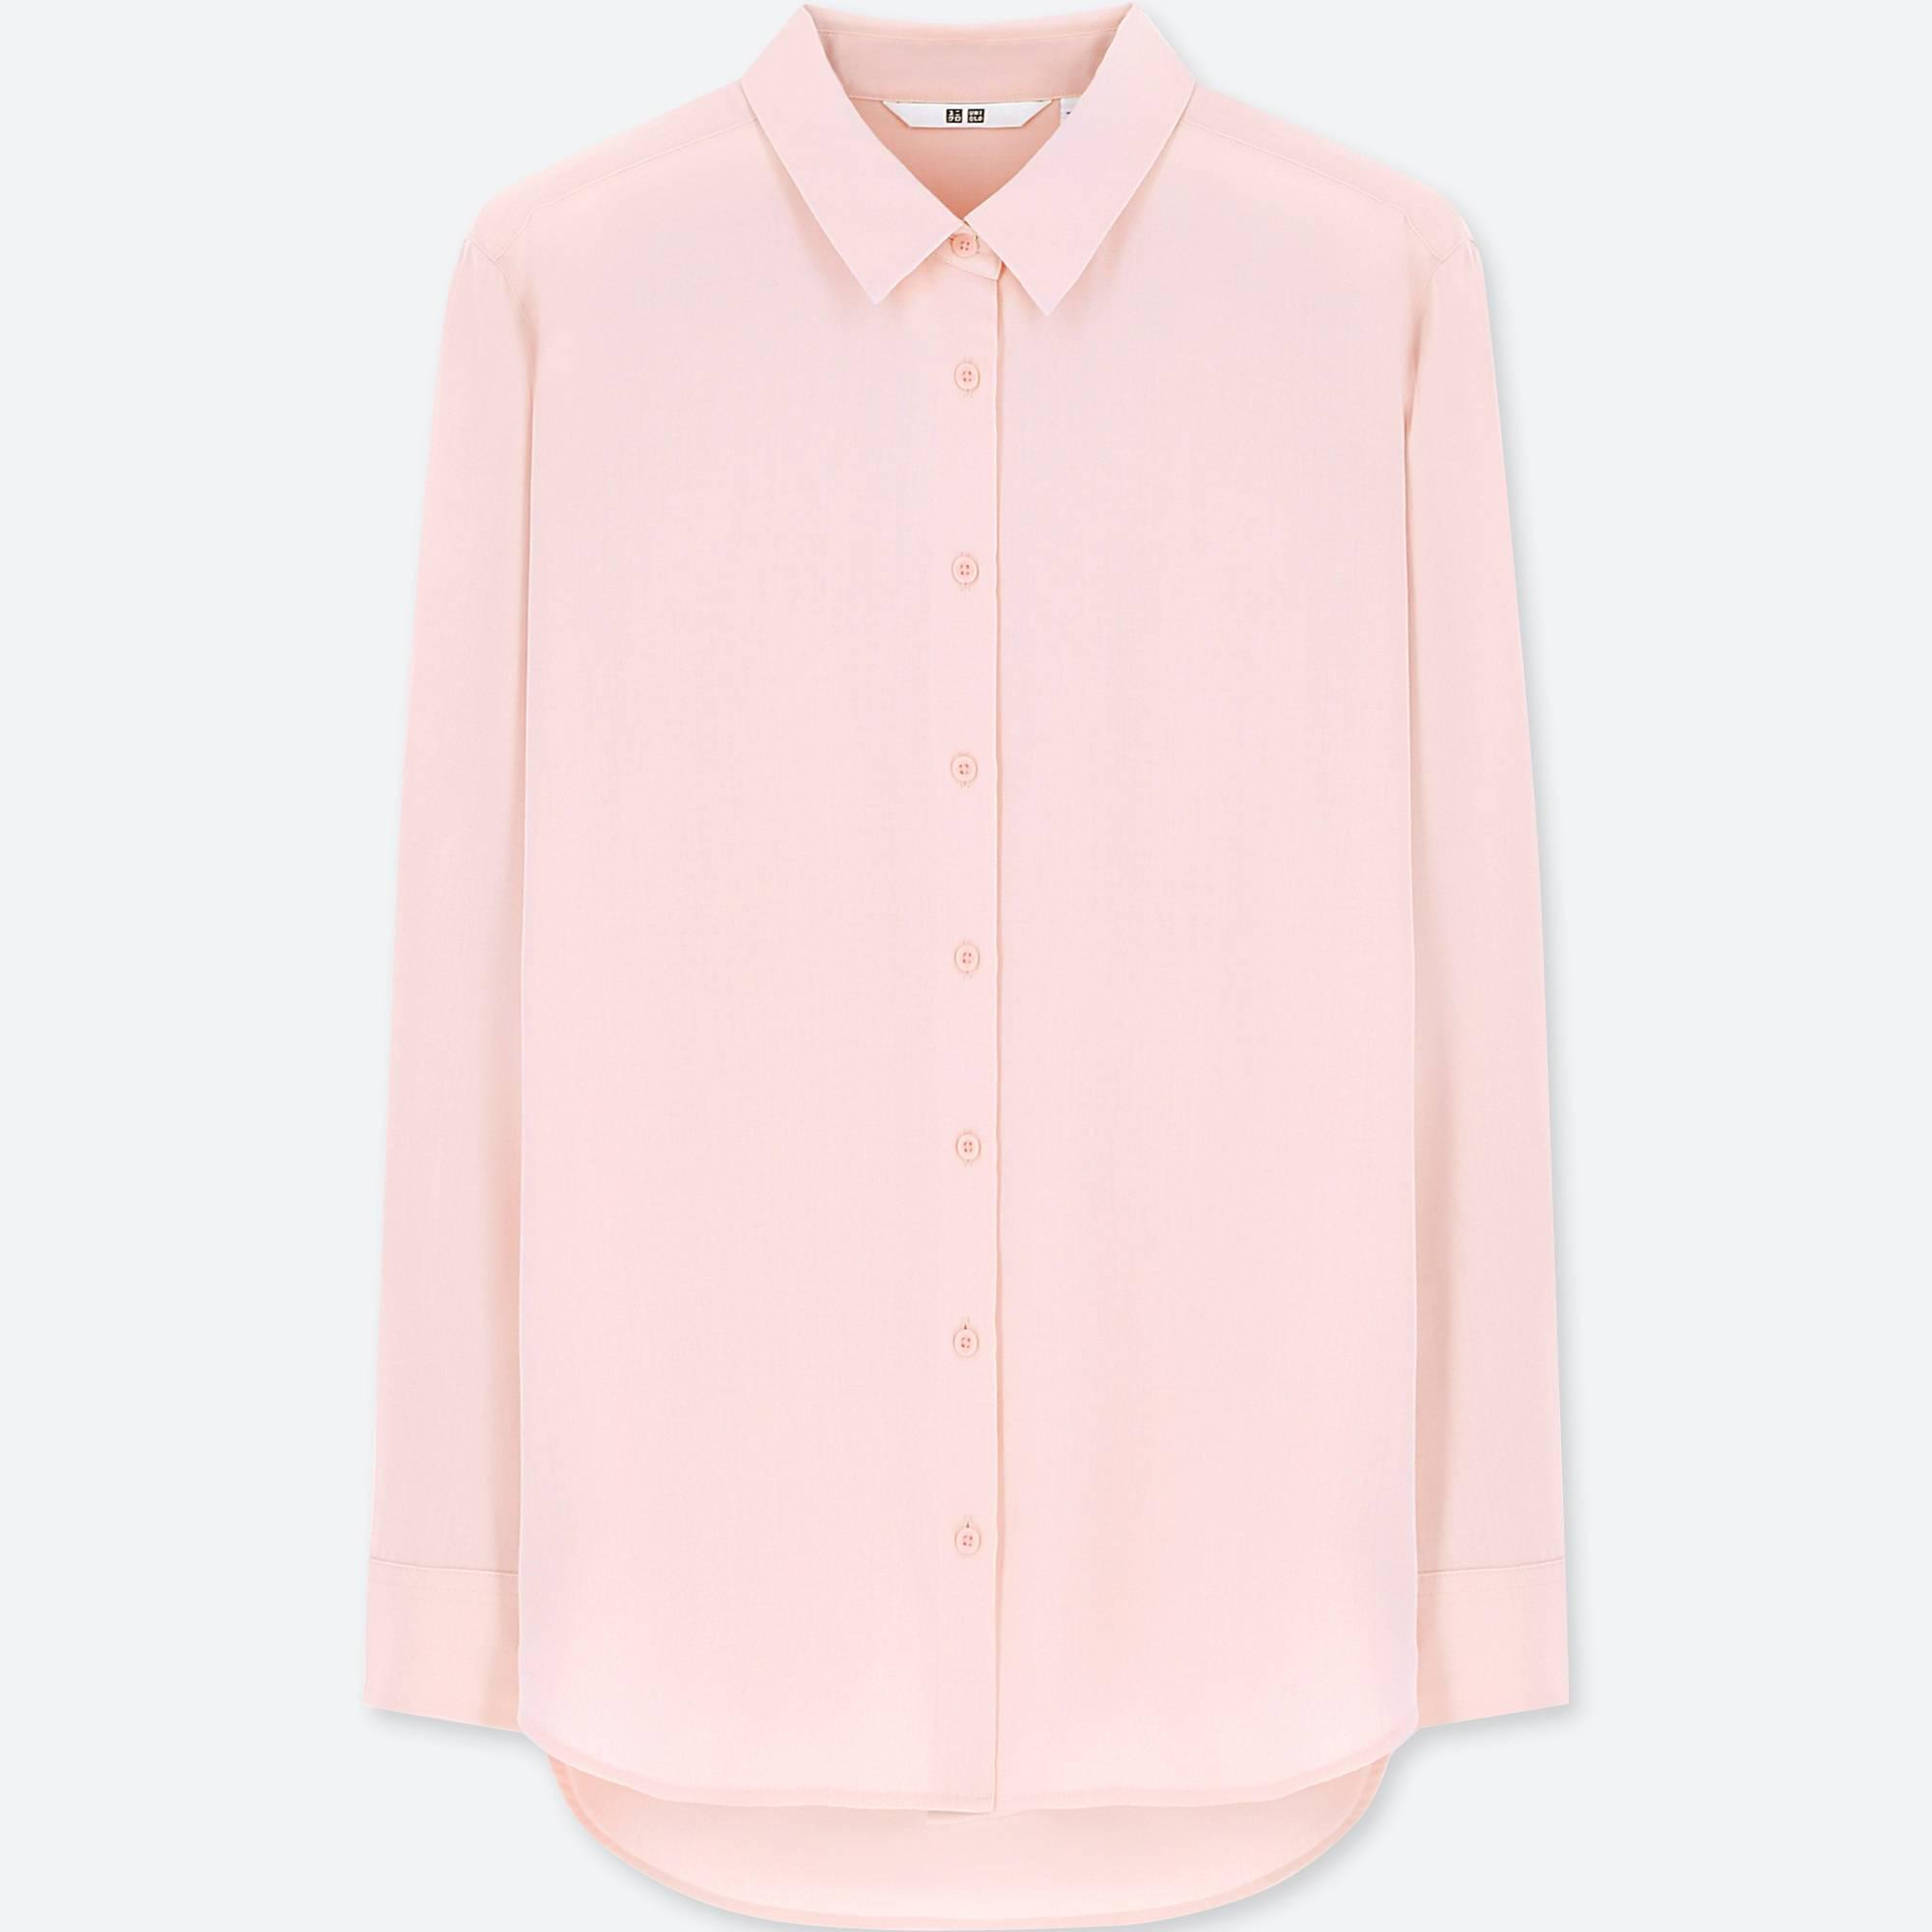 780800e971853 Lyst - Uniqlo Easy Care Rayon Long Sleeved Blouse in Pink